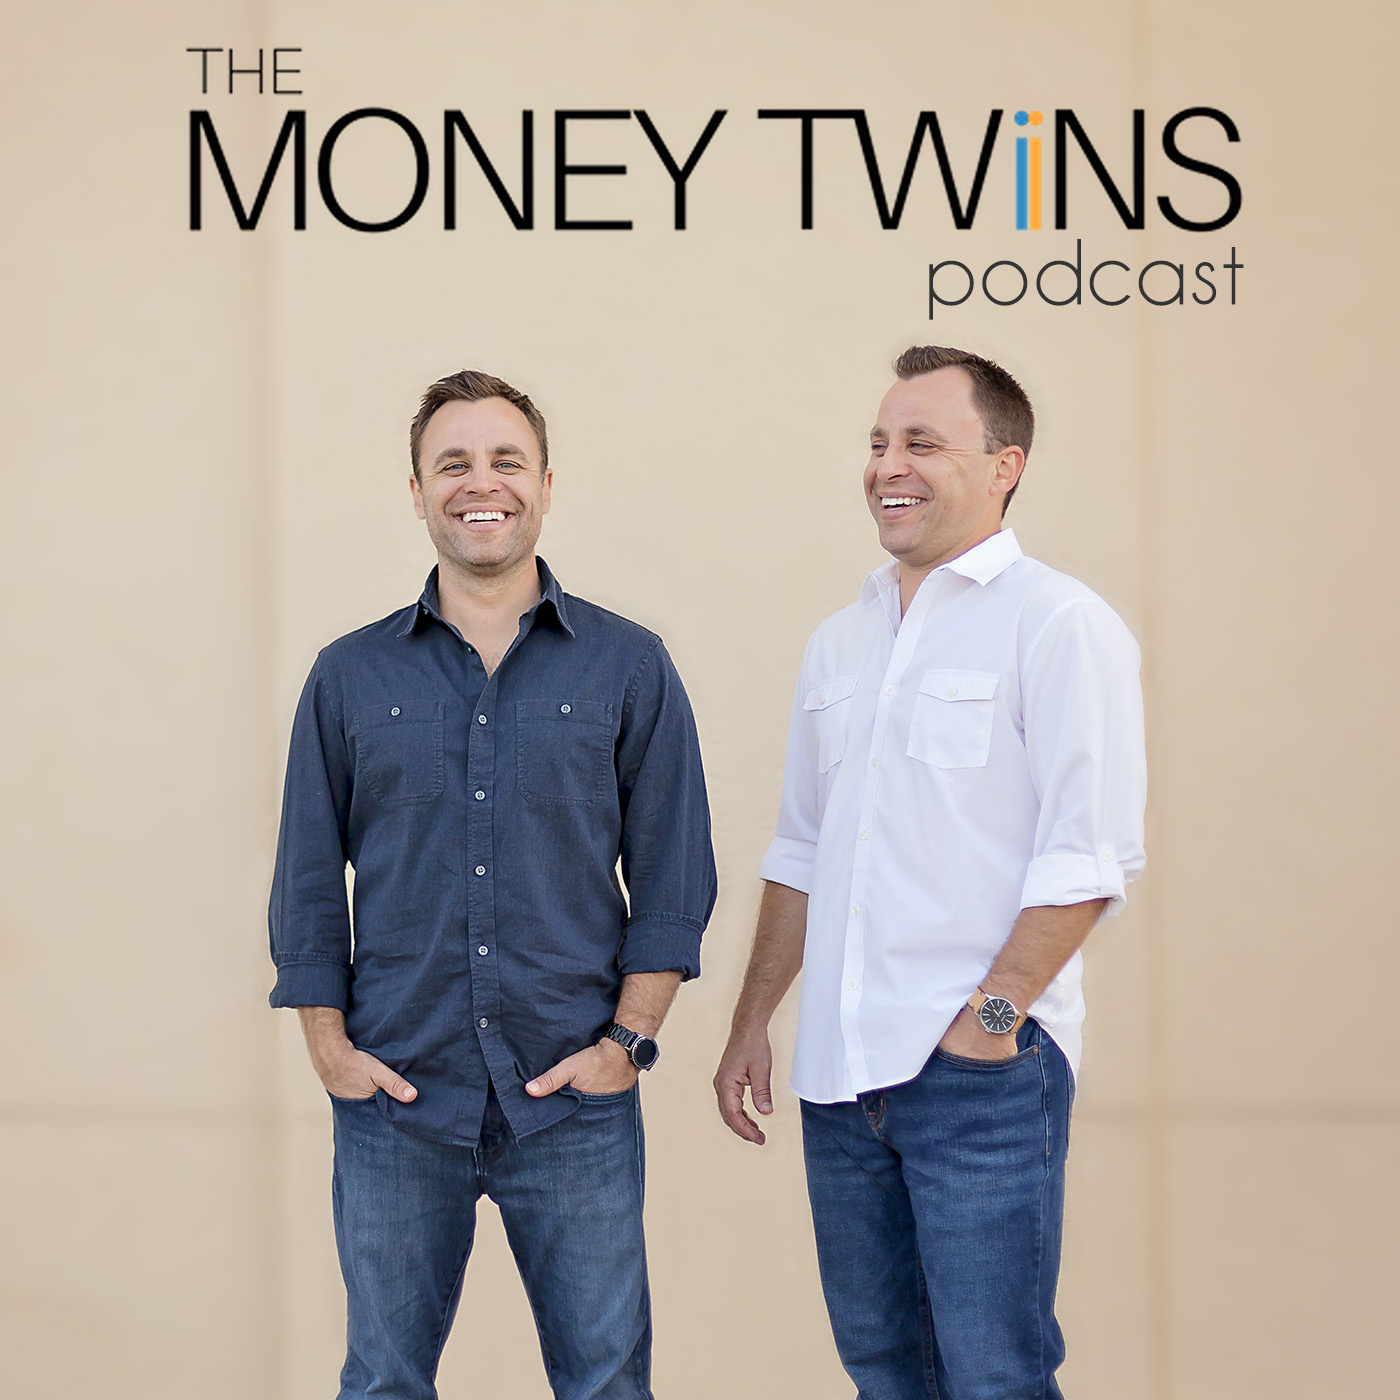 The Money Twins Podcast show art